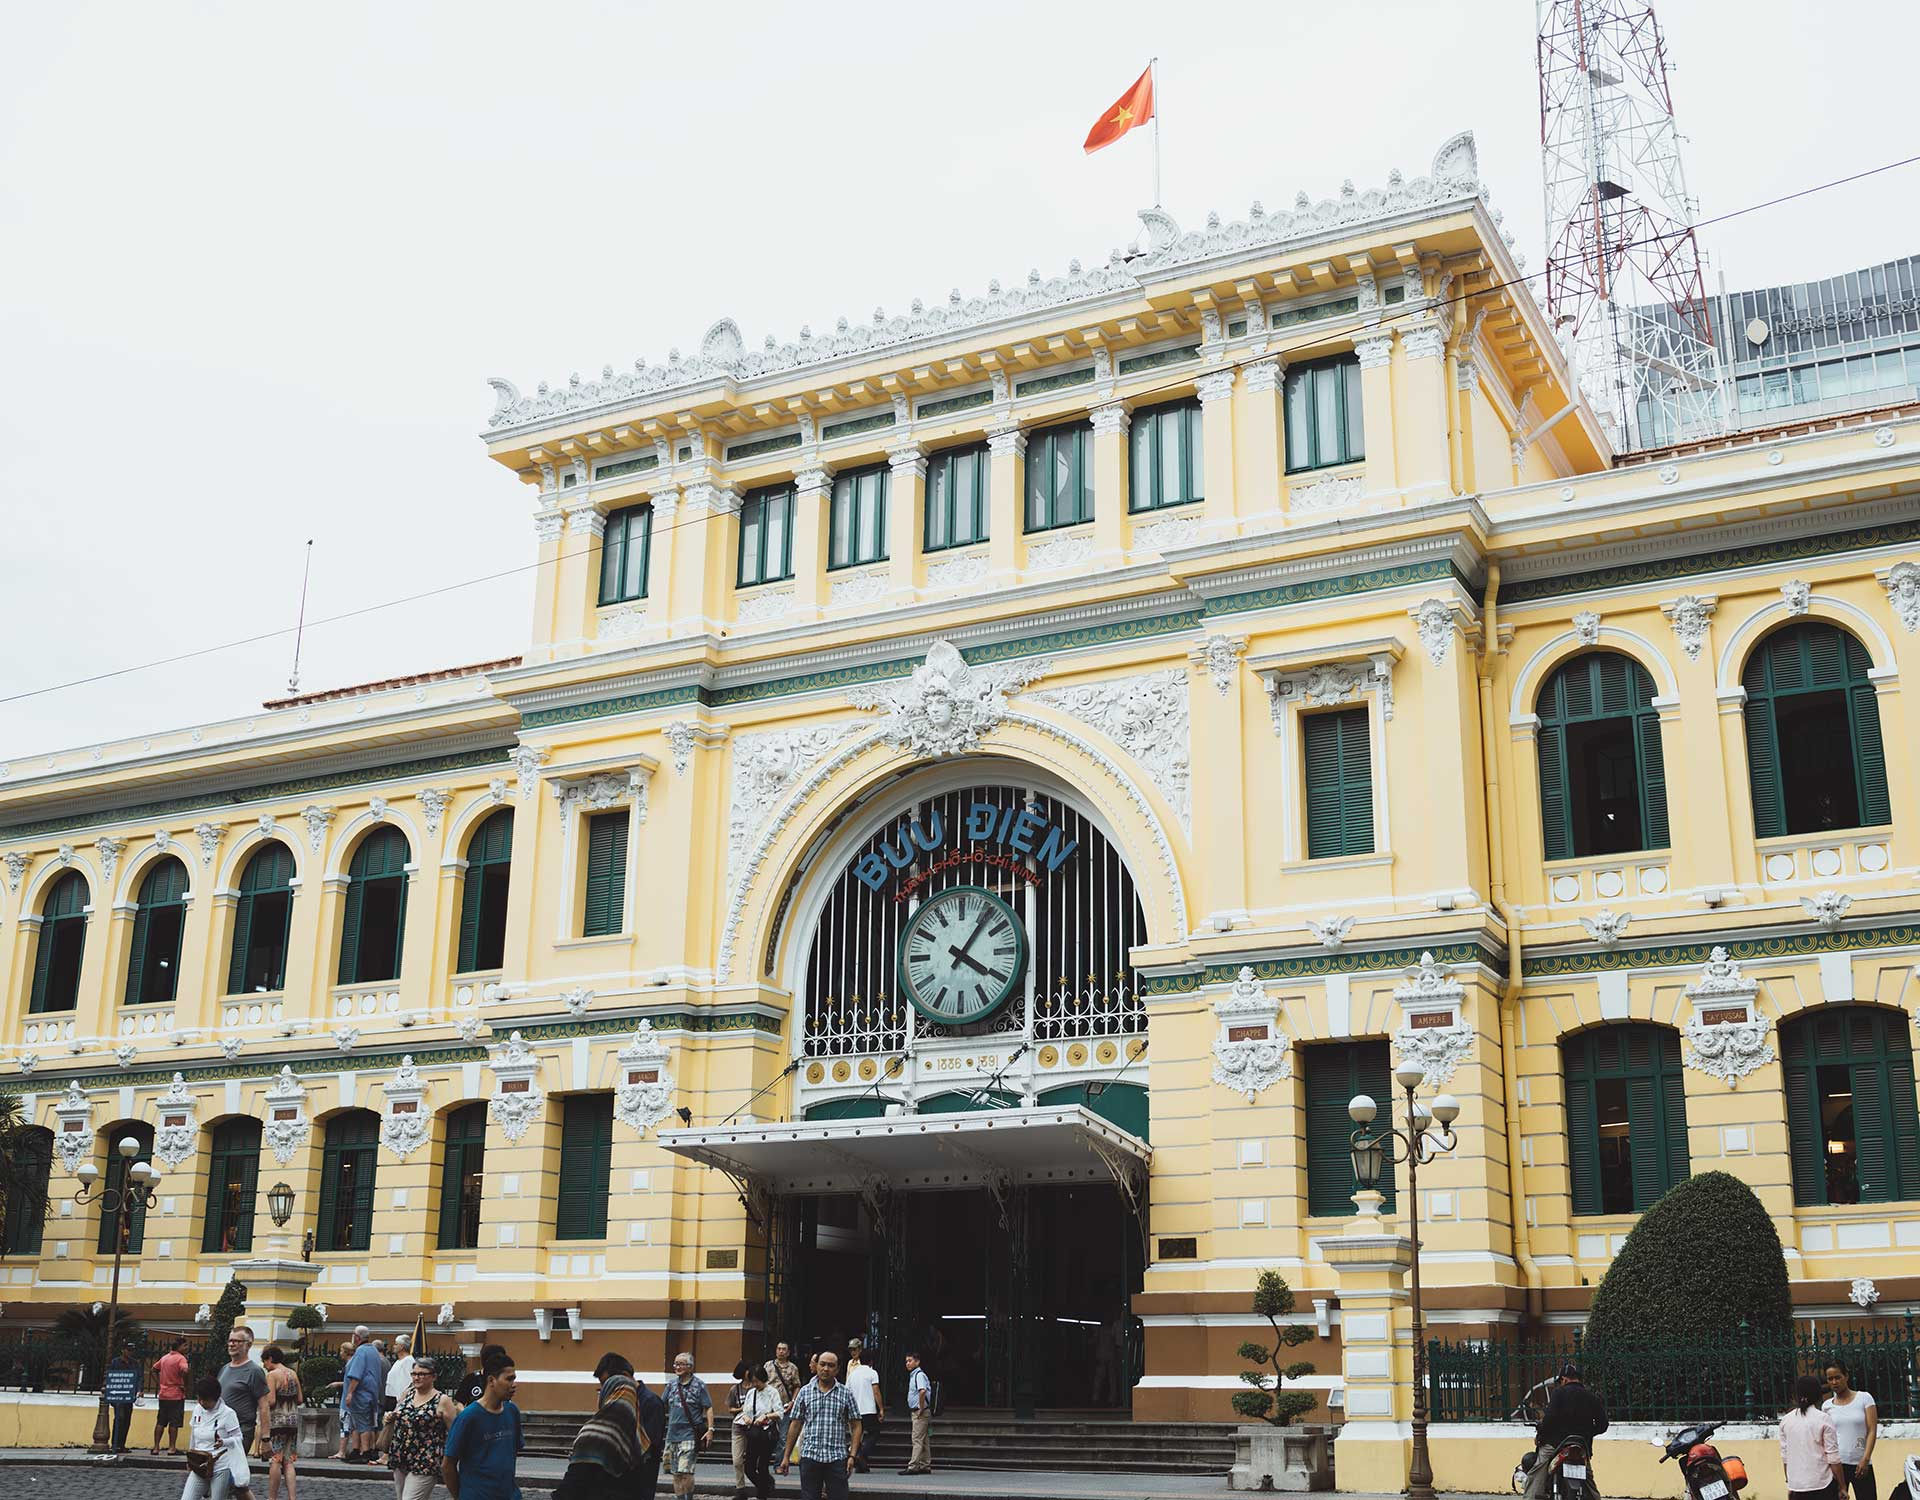 Ho Chi Minh City The Central Post Office